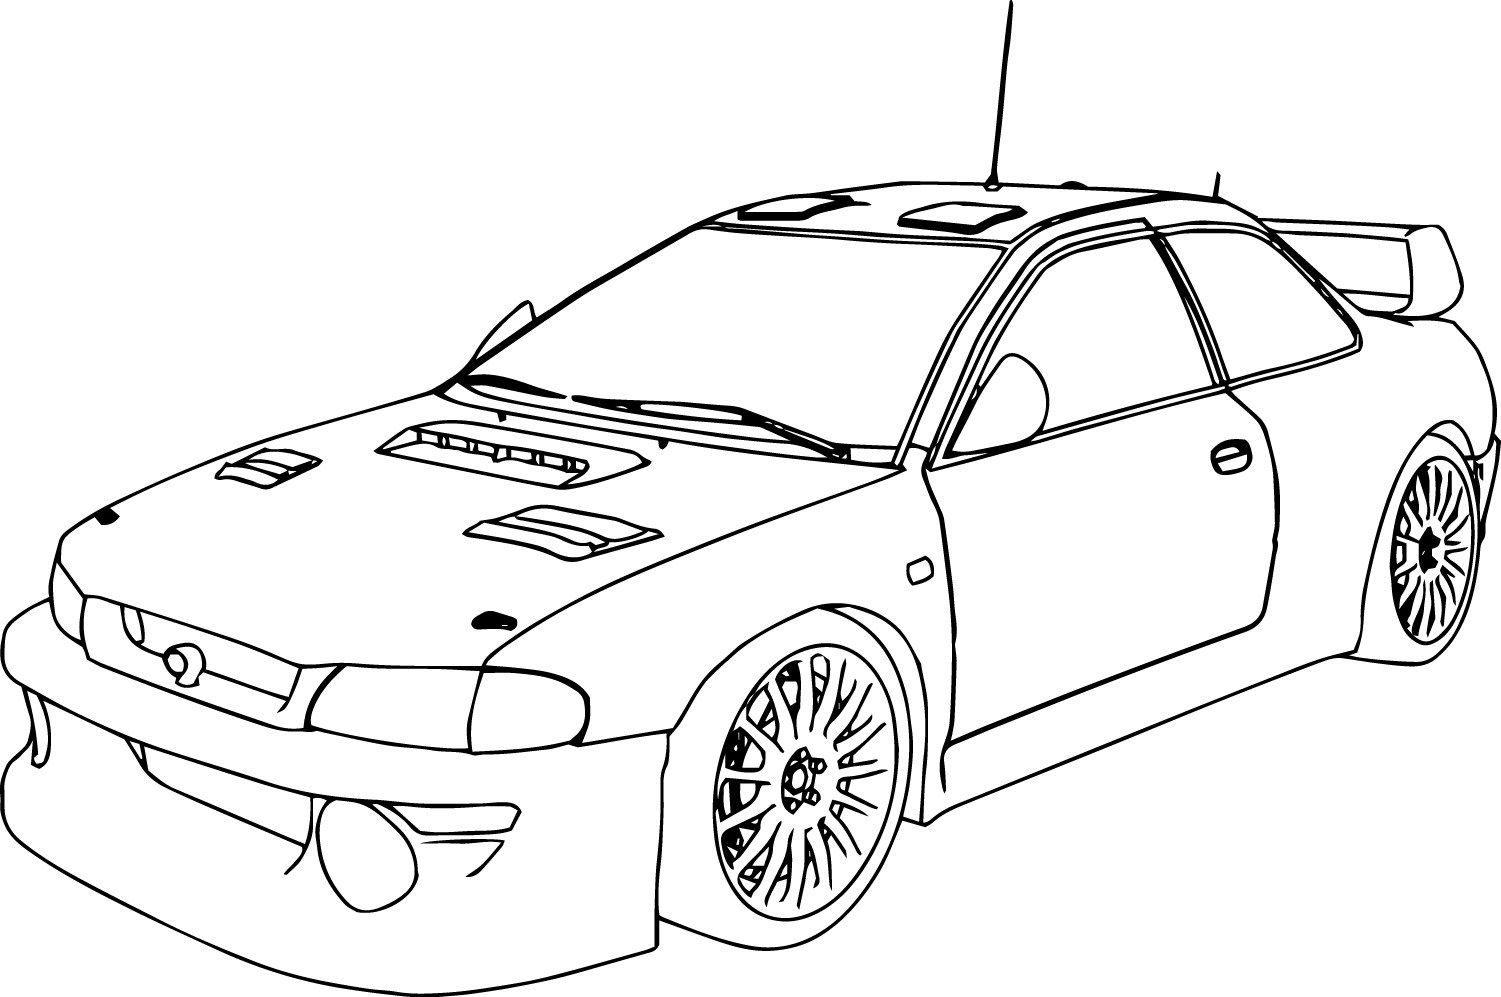 racecar coloring page 45 race car coloring pages and crafts cakes for kids page coloring racecar